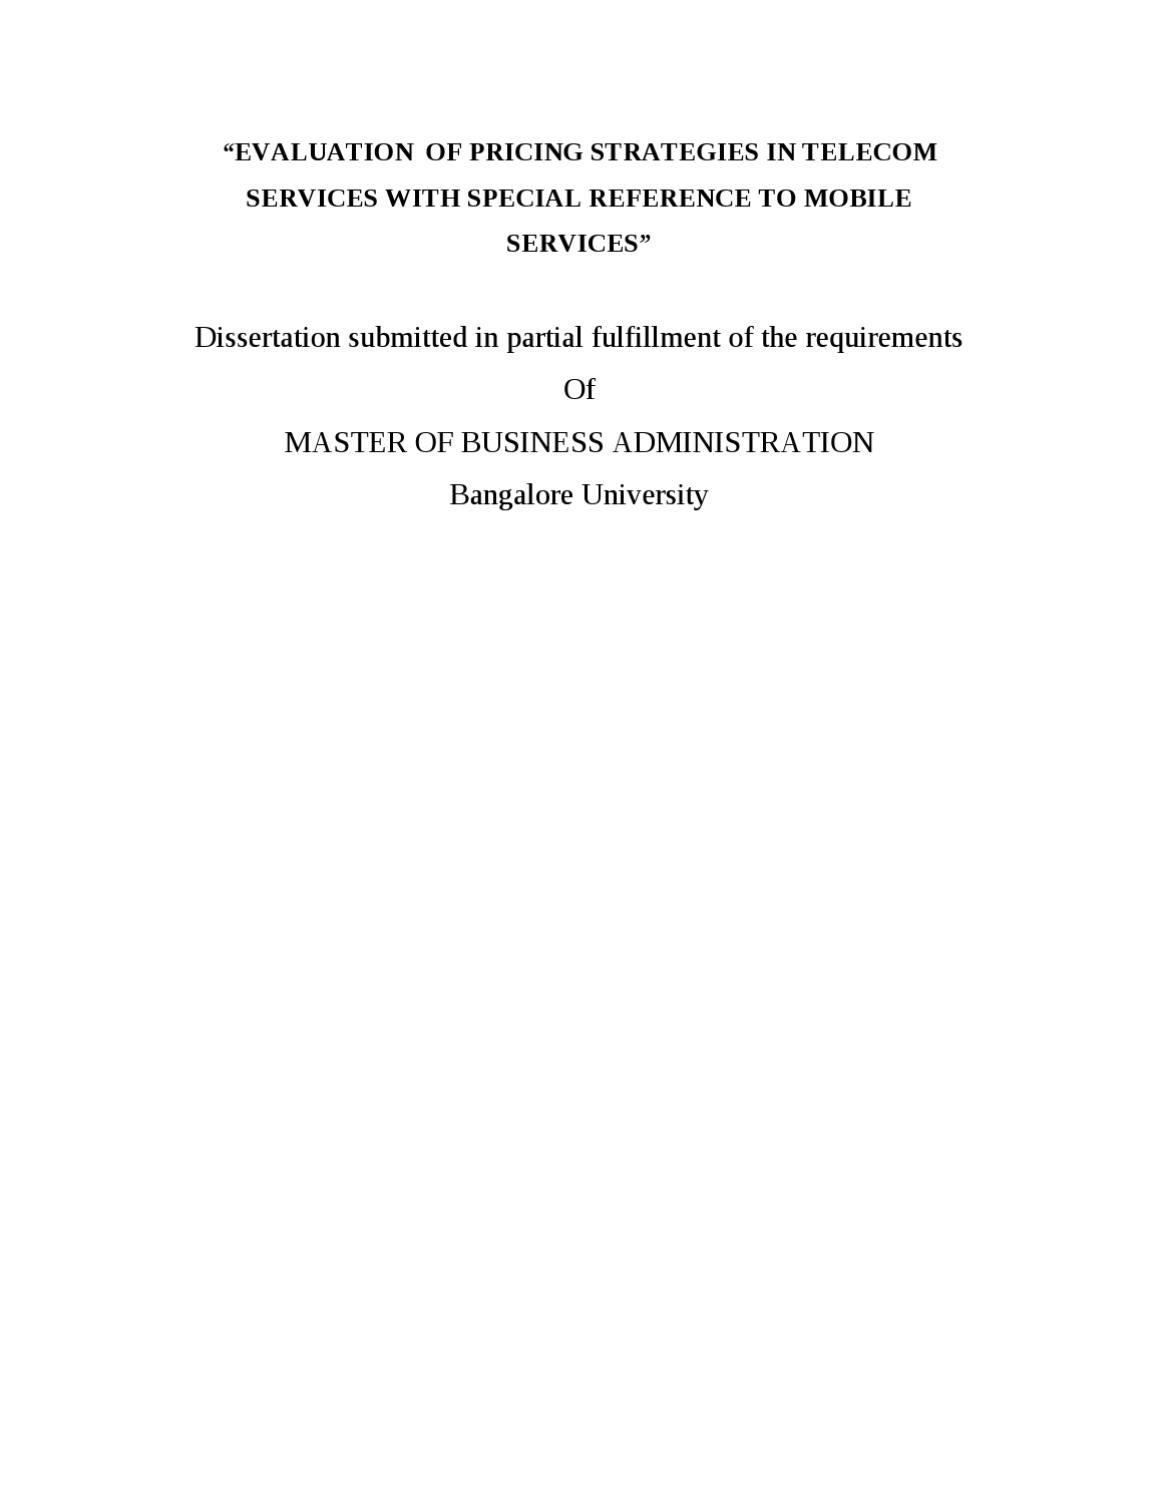 Dissertation report on telecommunication